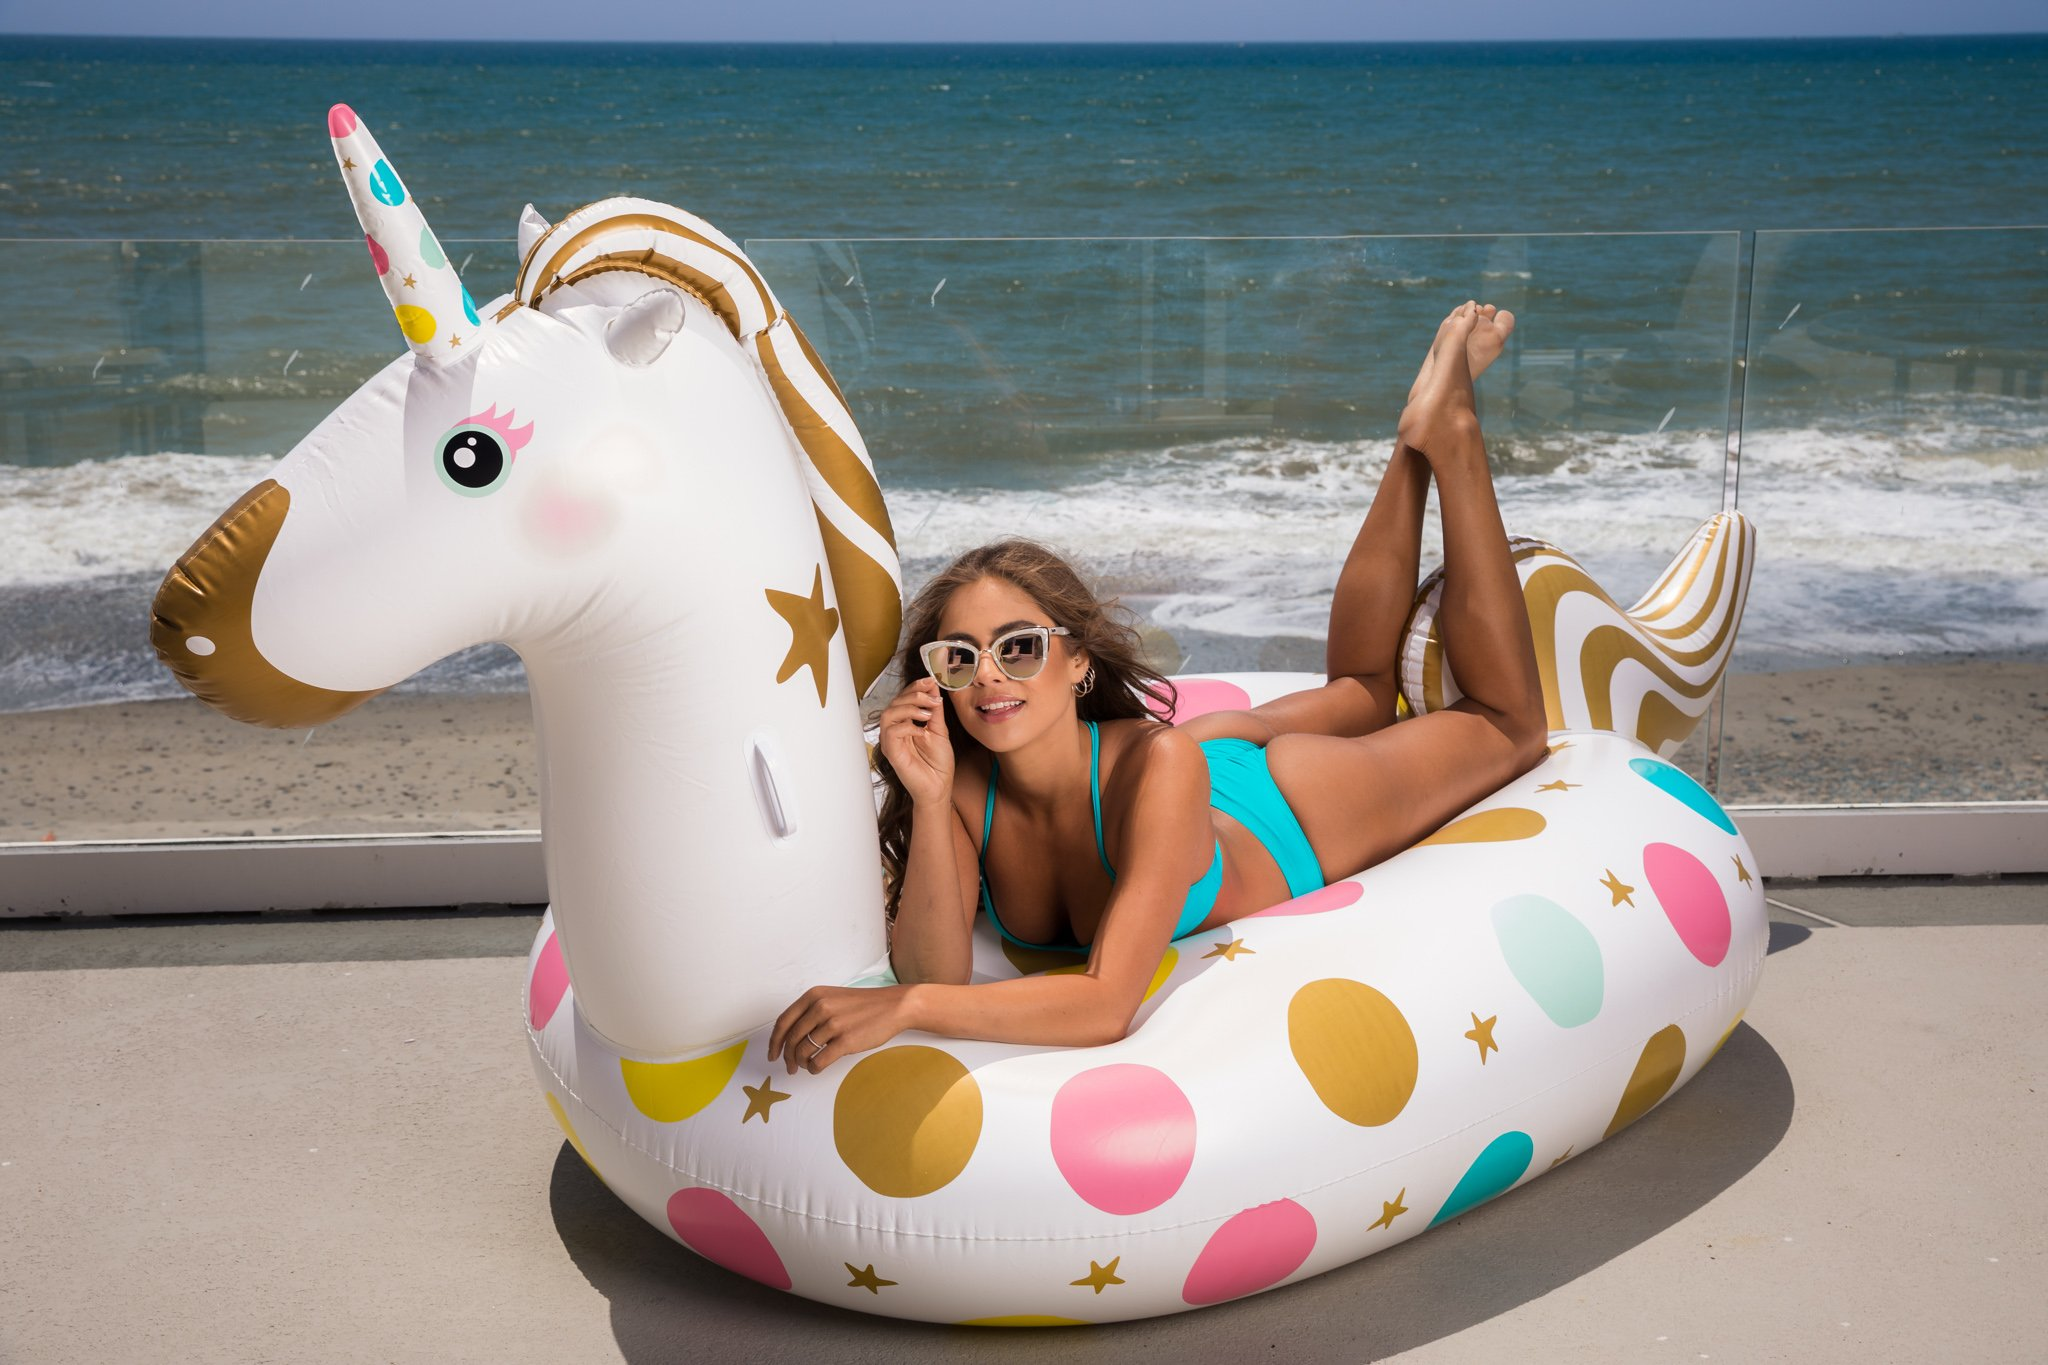 Unicorn Pool Float - Giant 107 x 44 x 55 Inches Inflatable Giant Unicorn Float Swimming Pool River Raft Float Unicorn… 6